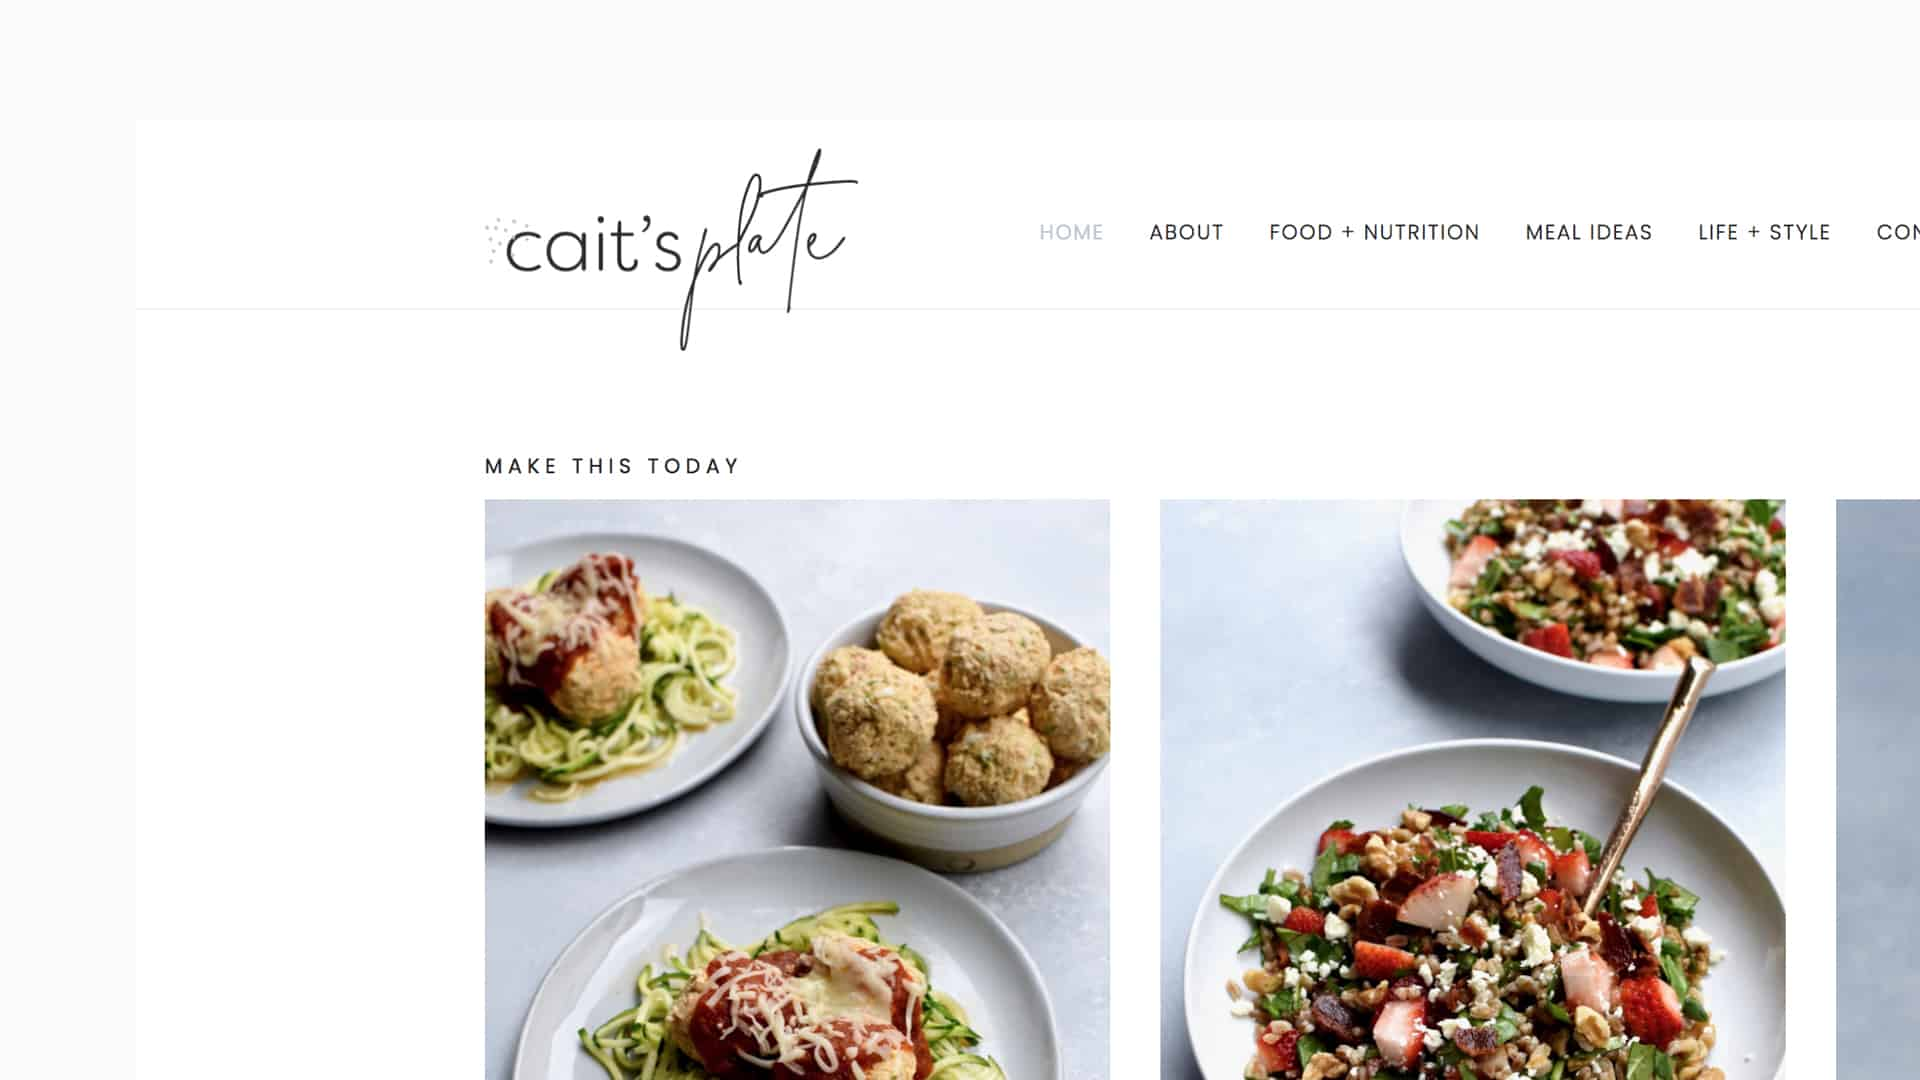 Cait's Plate blog redesign - above the fold